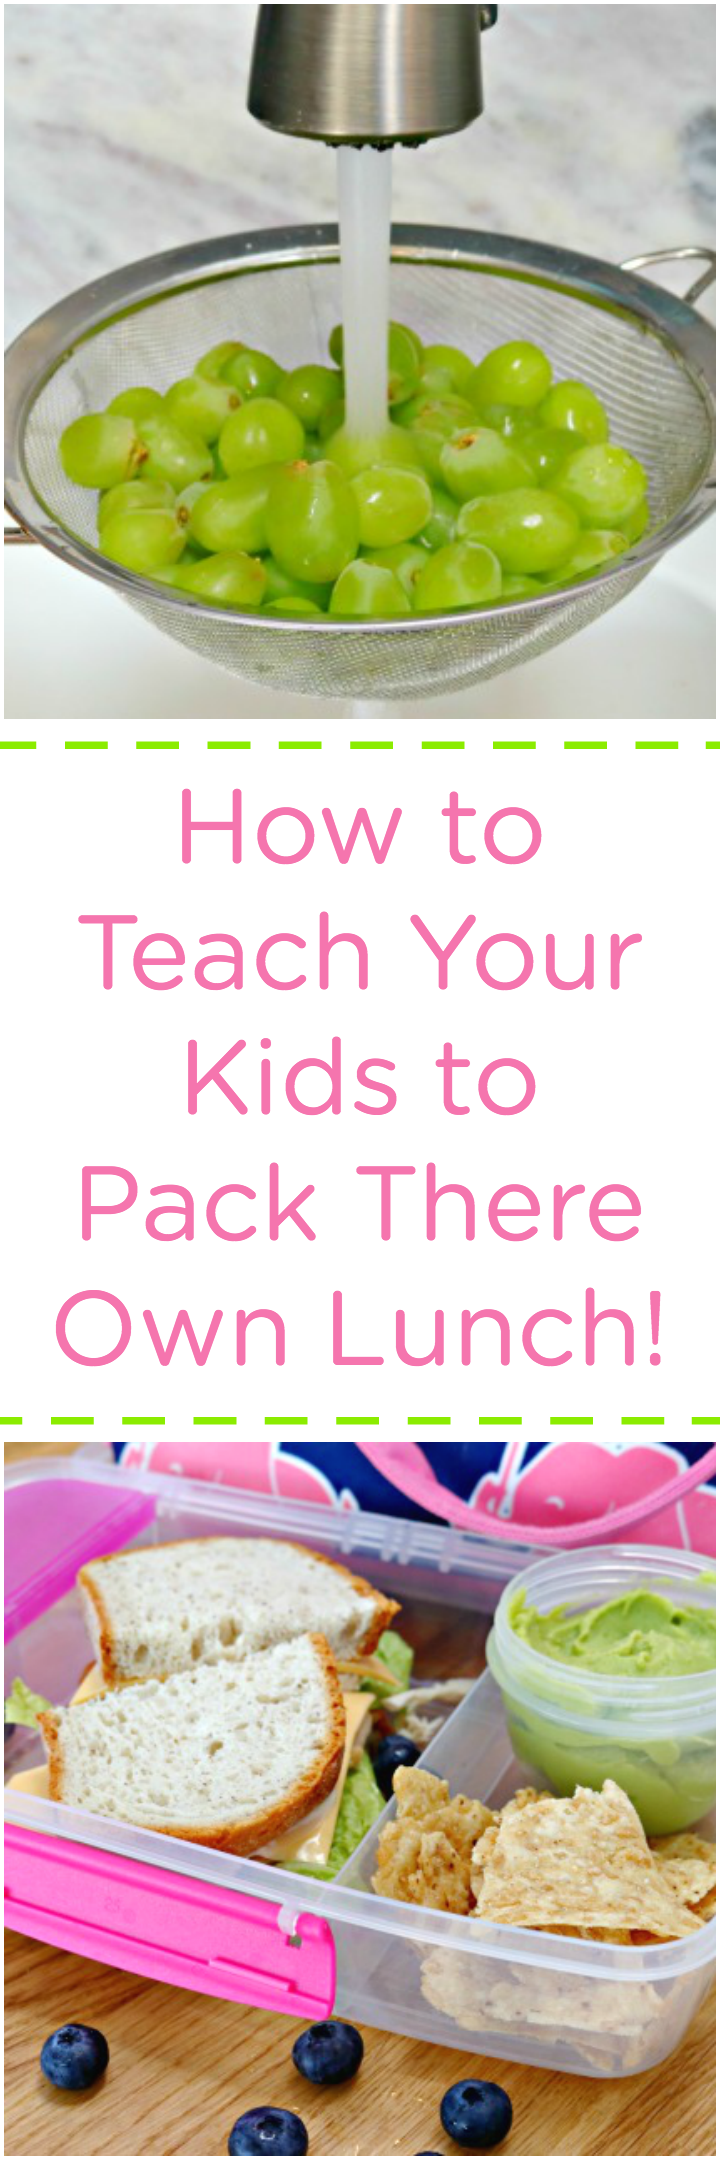 School Lunches - Teach Your Kids to Pack Their Own